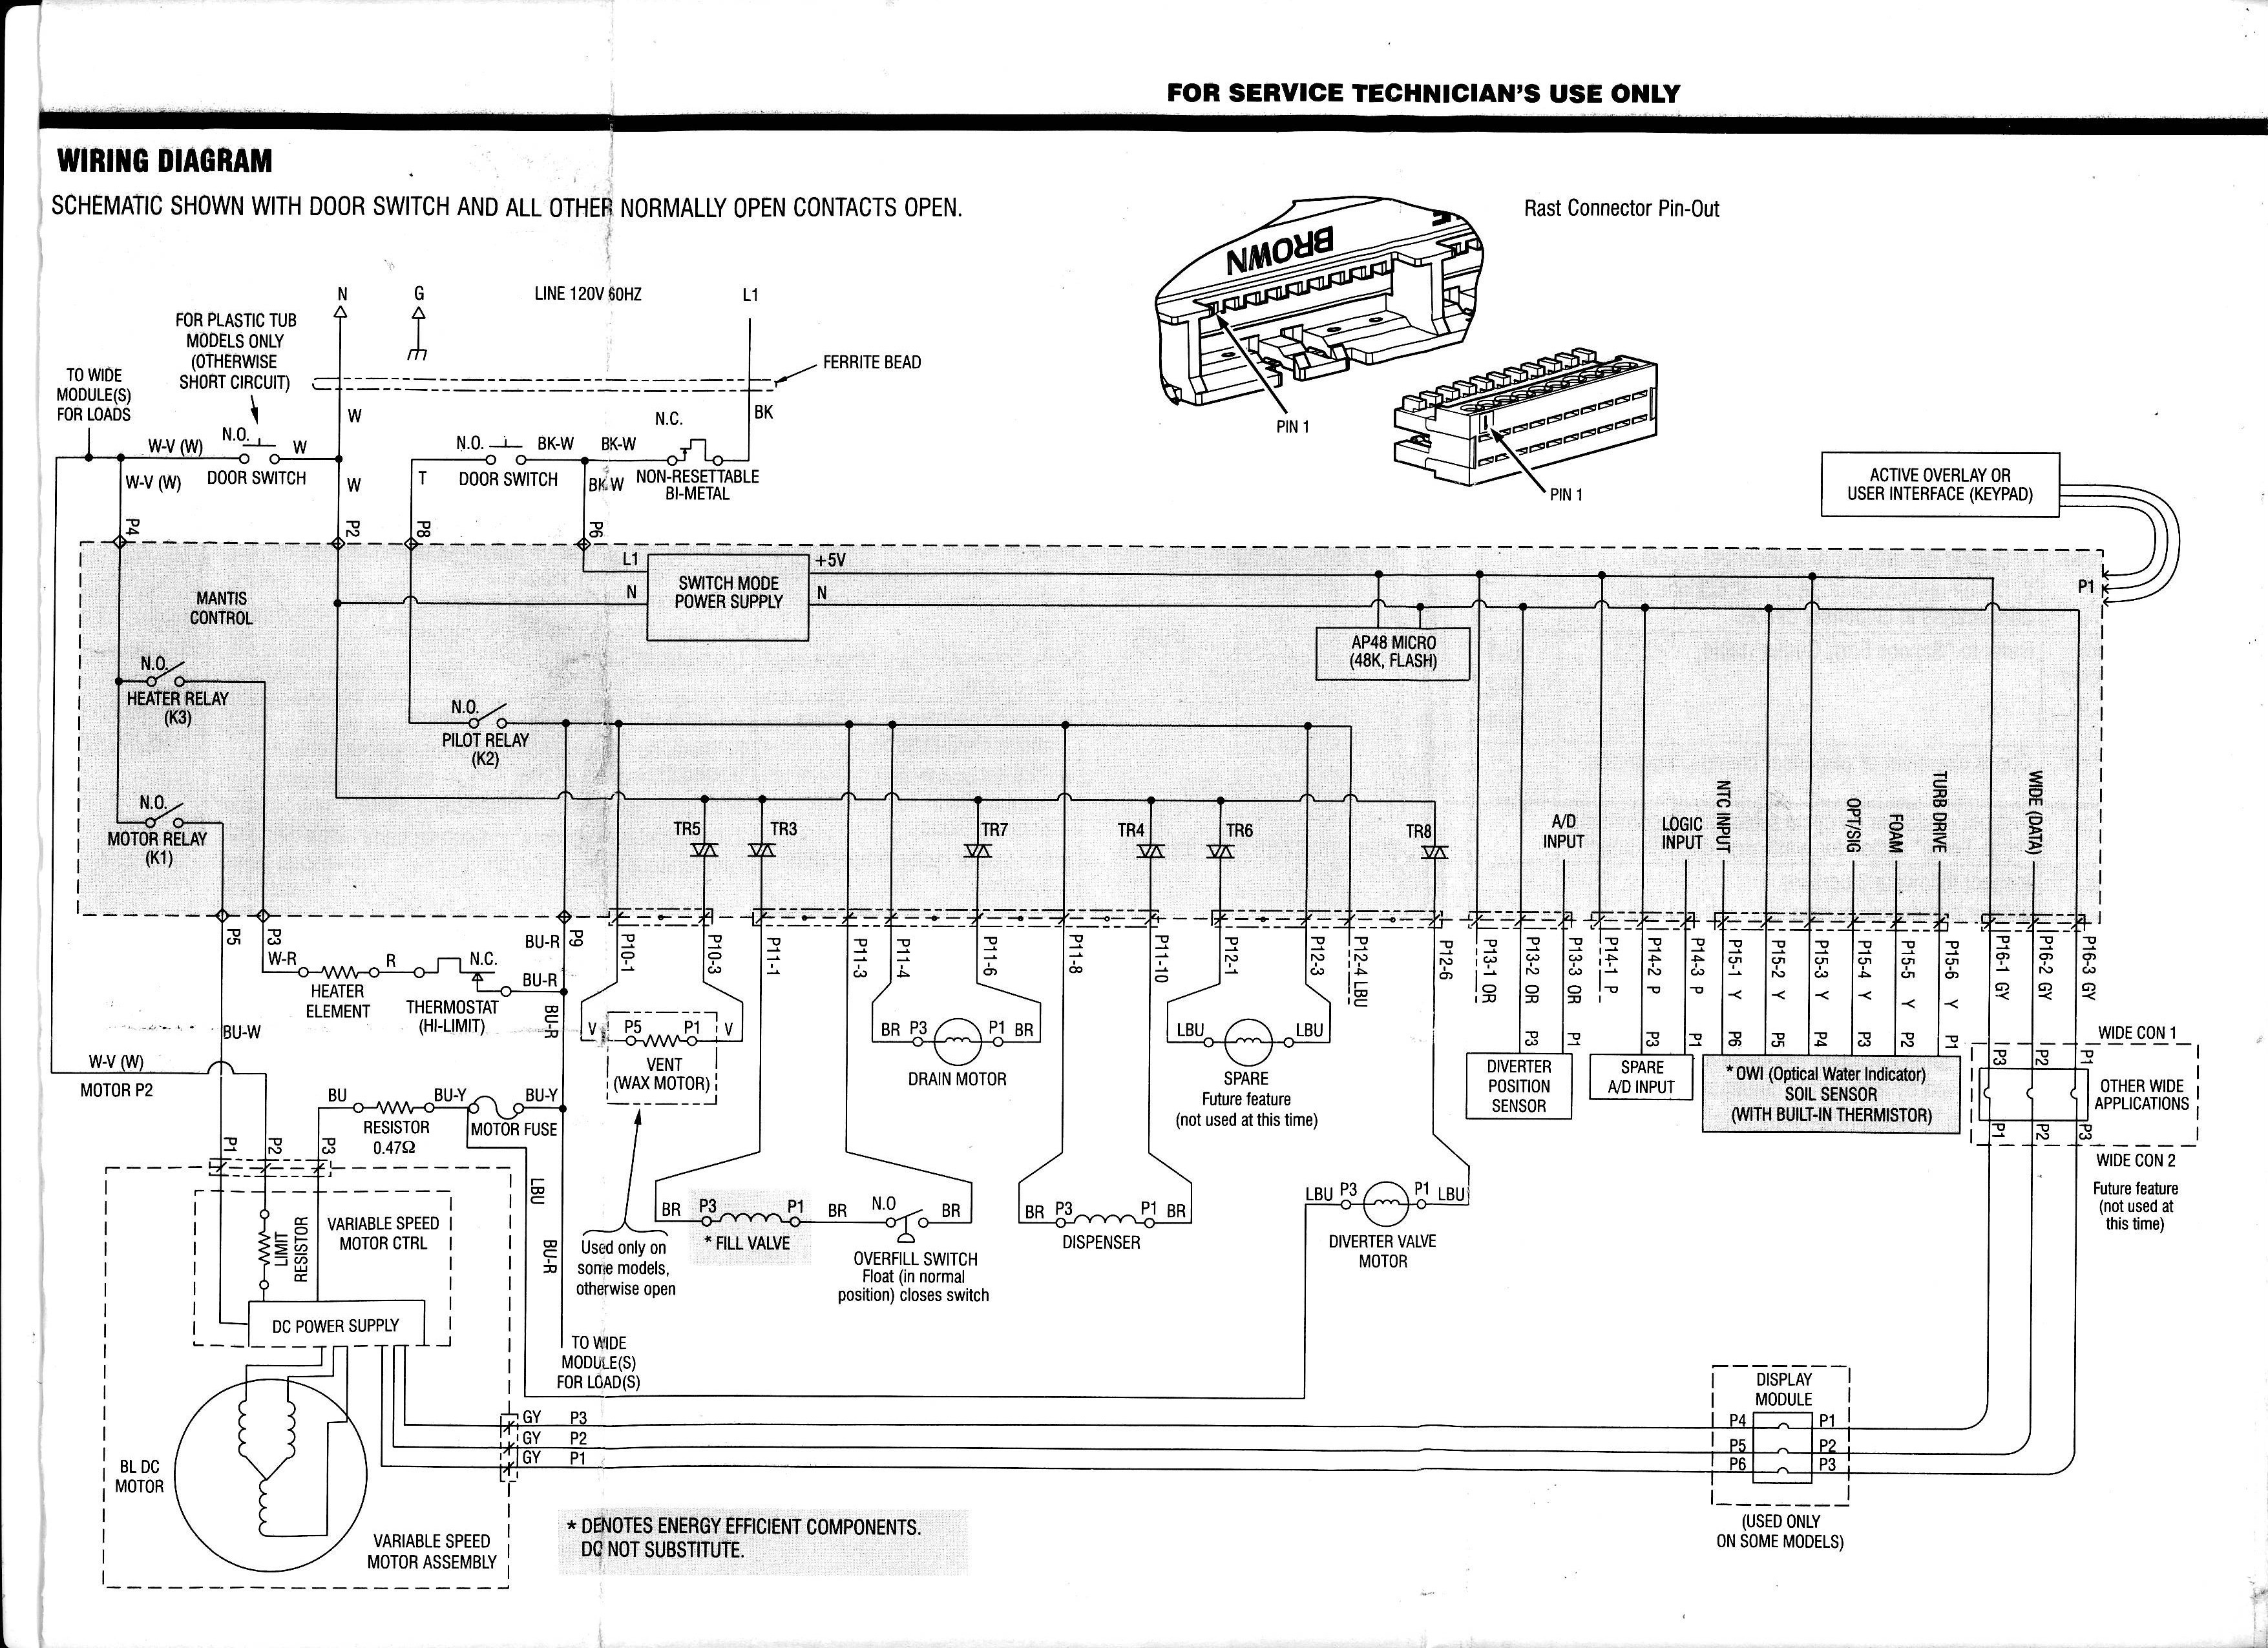 ge load center wiring diagram Collection-Relay Base Wiring Diagram New Wiring Diagram for Ge Rr7 Relay Valid Großzügig Ge Load Center 6-s